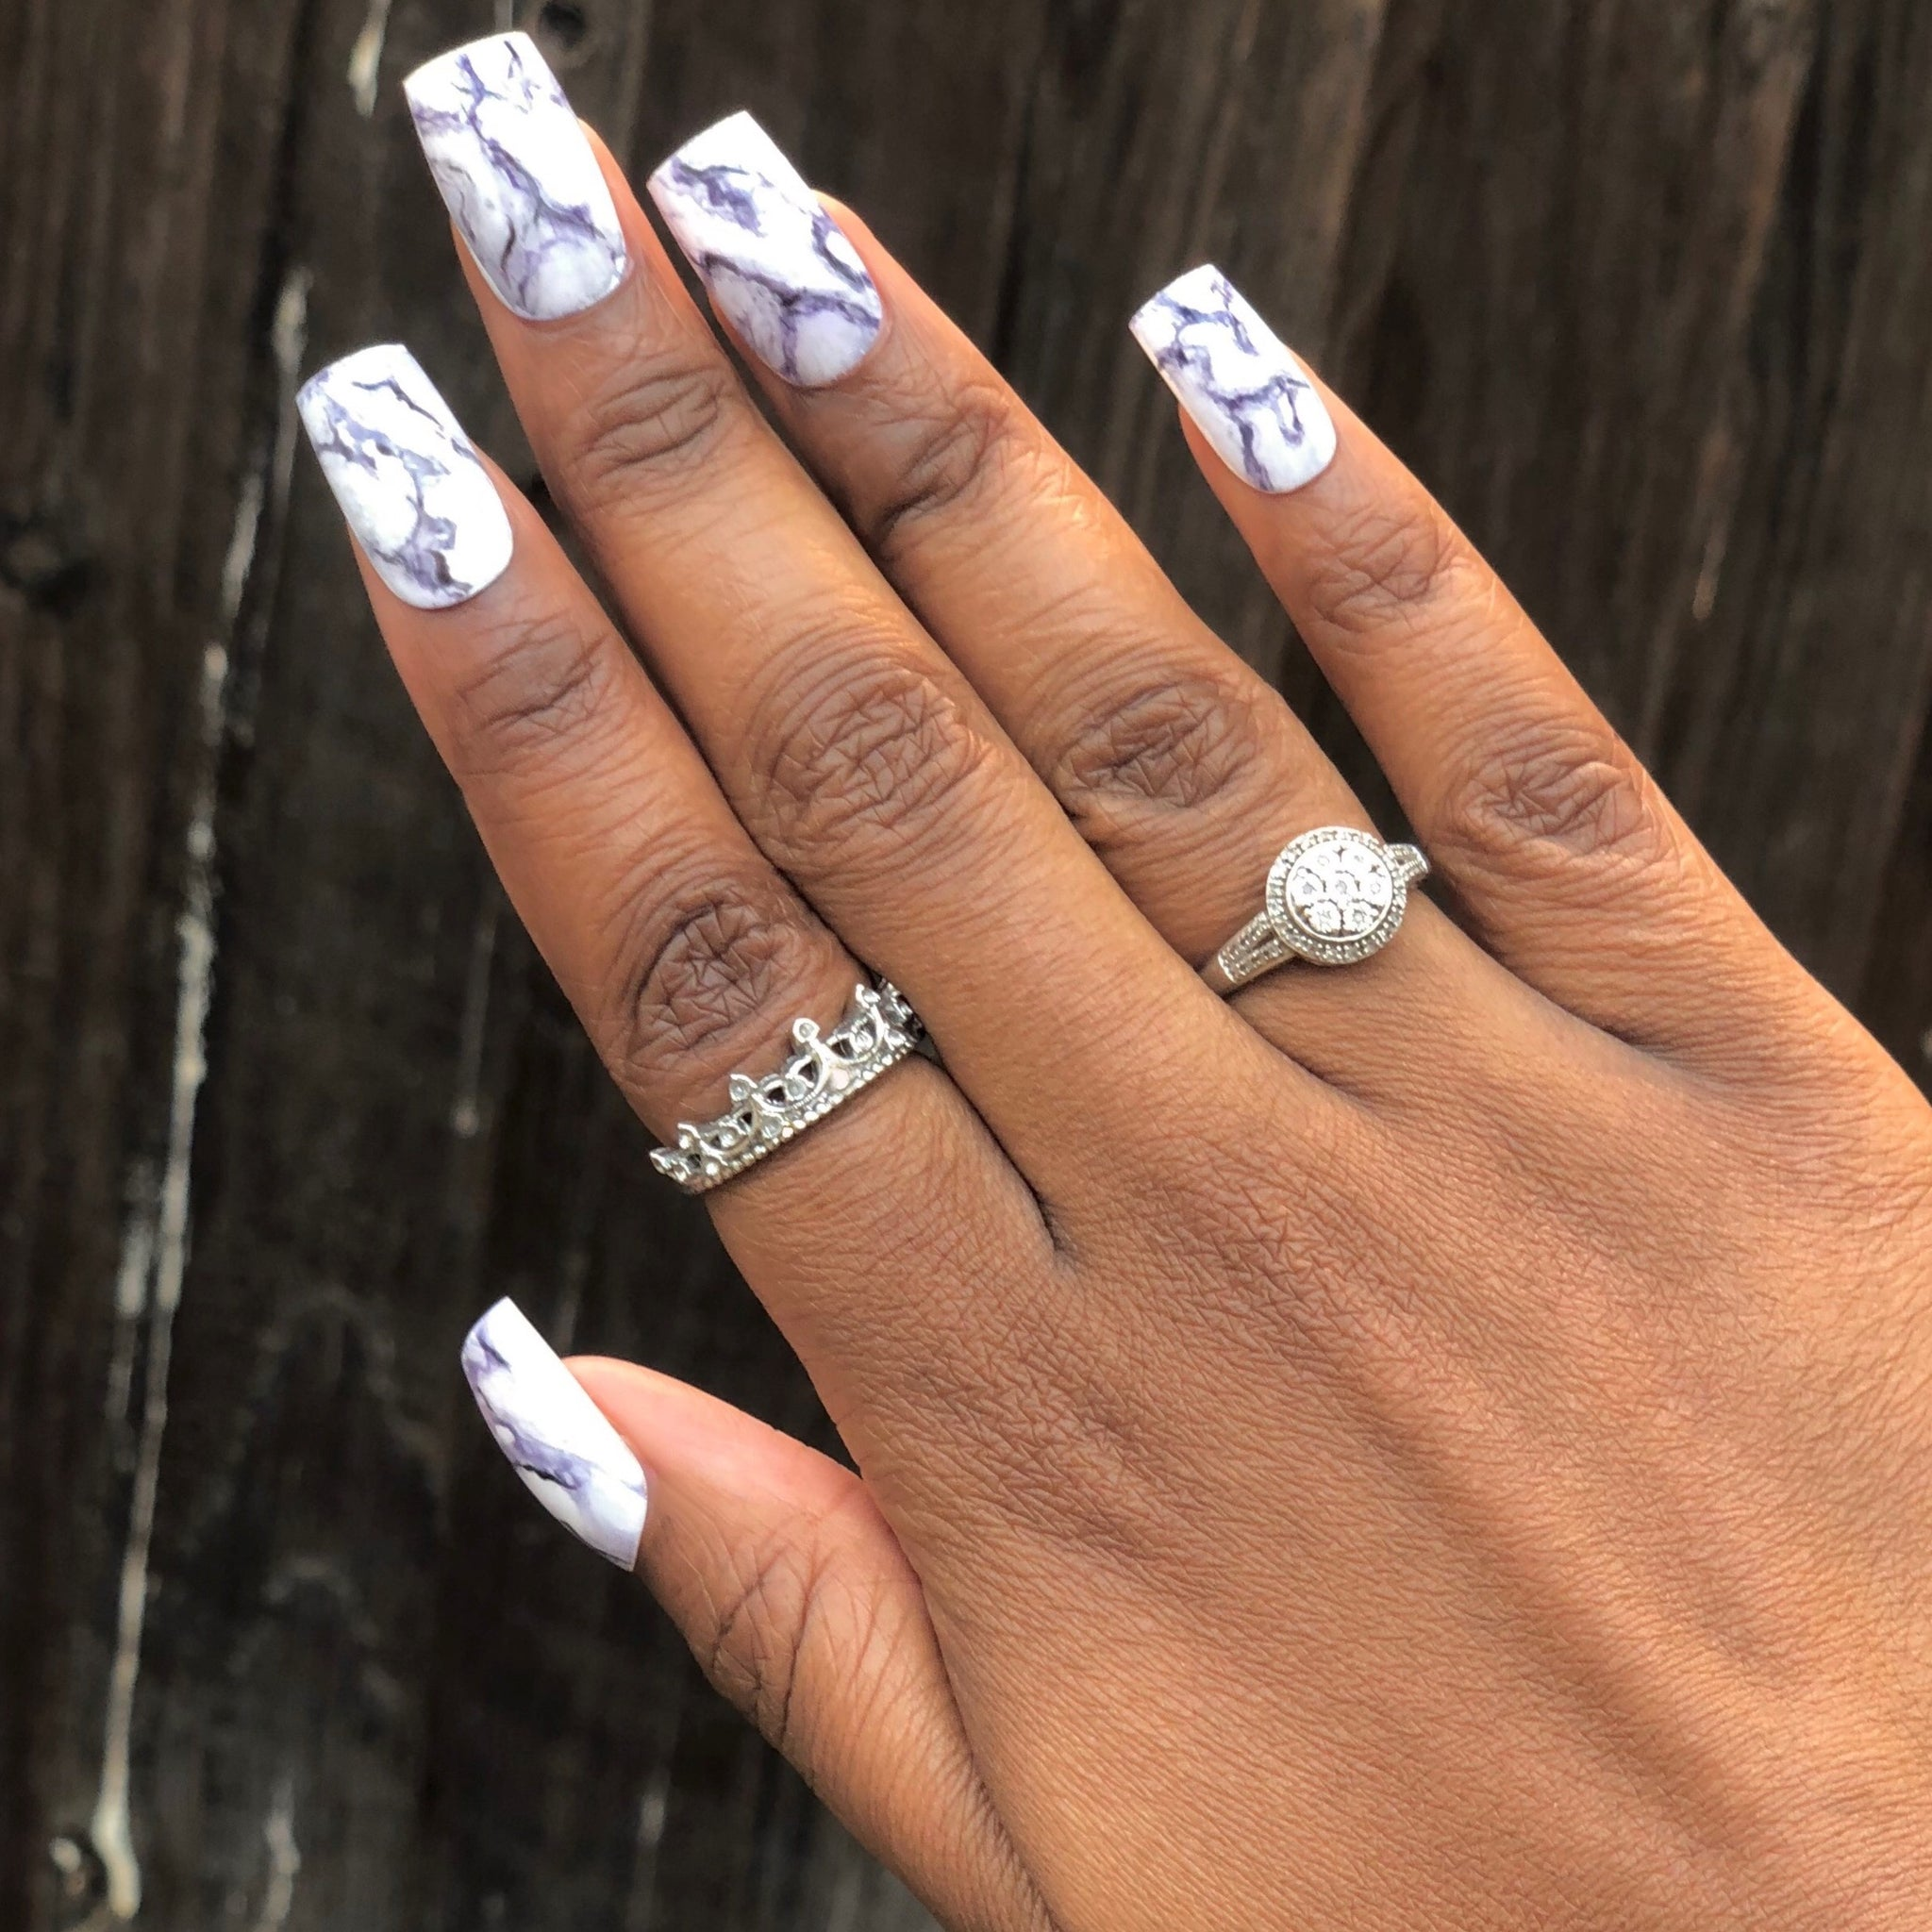 Manicure hand wearing marble press on nails.